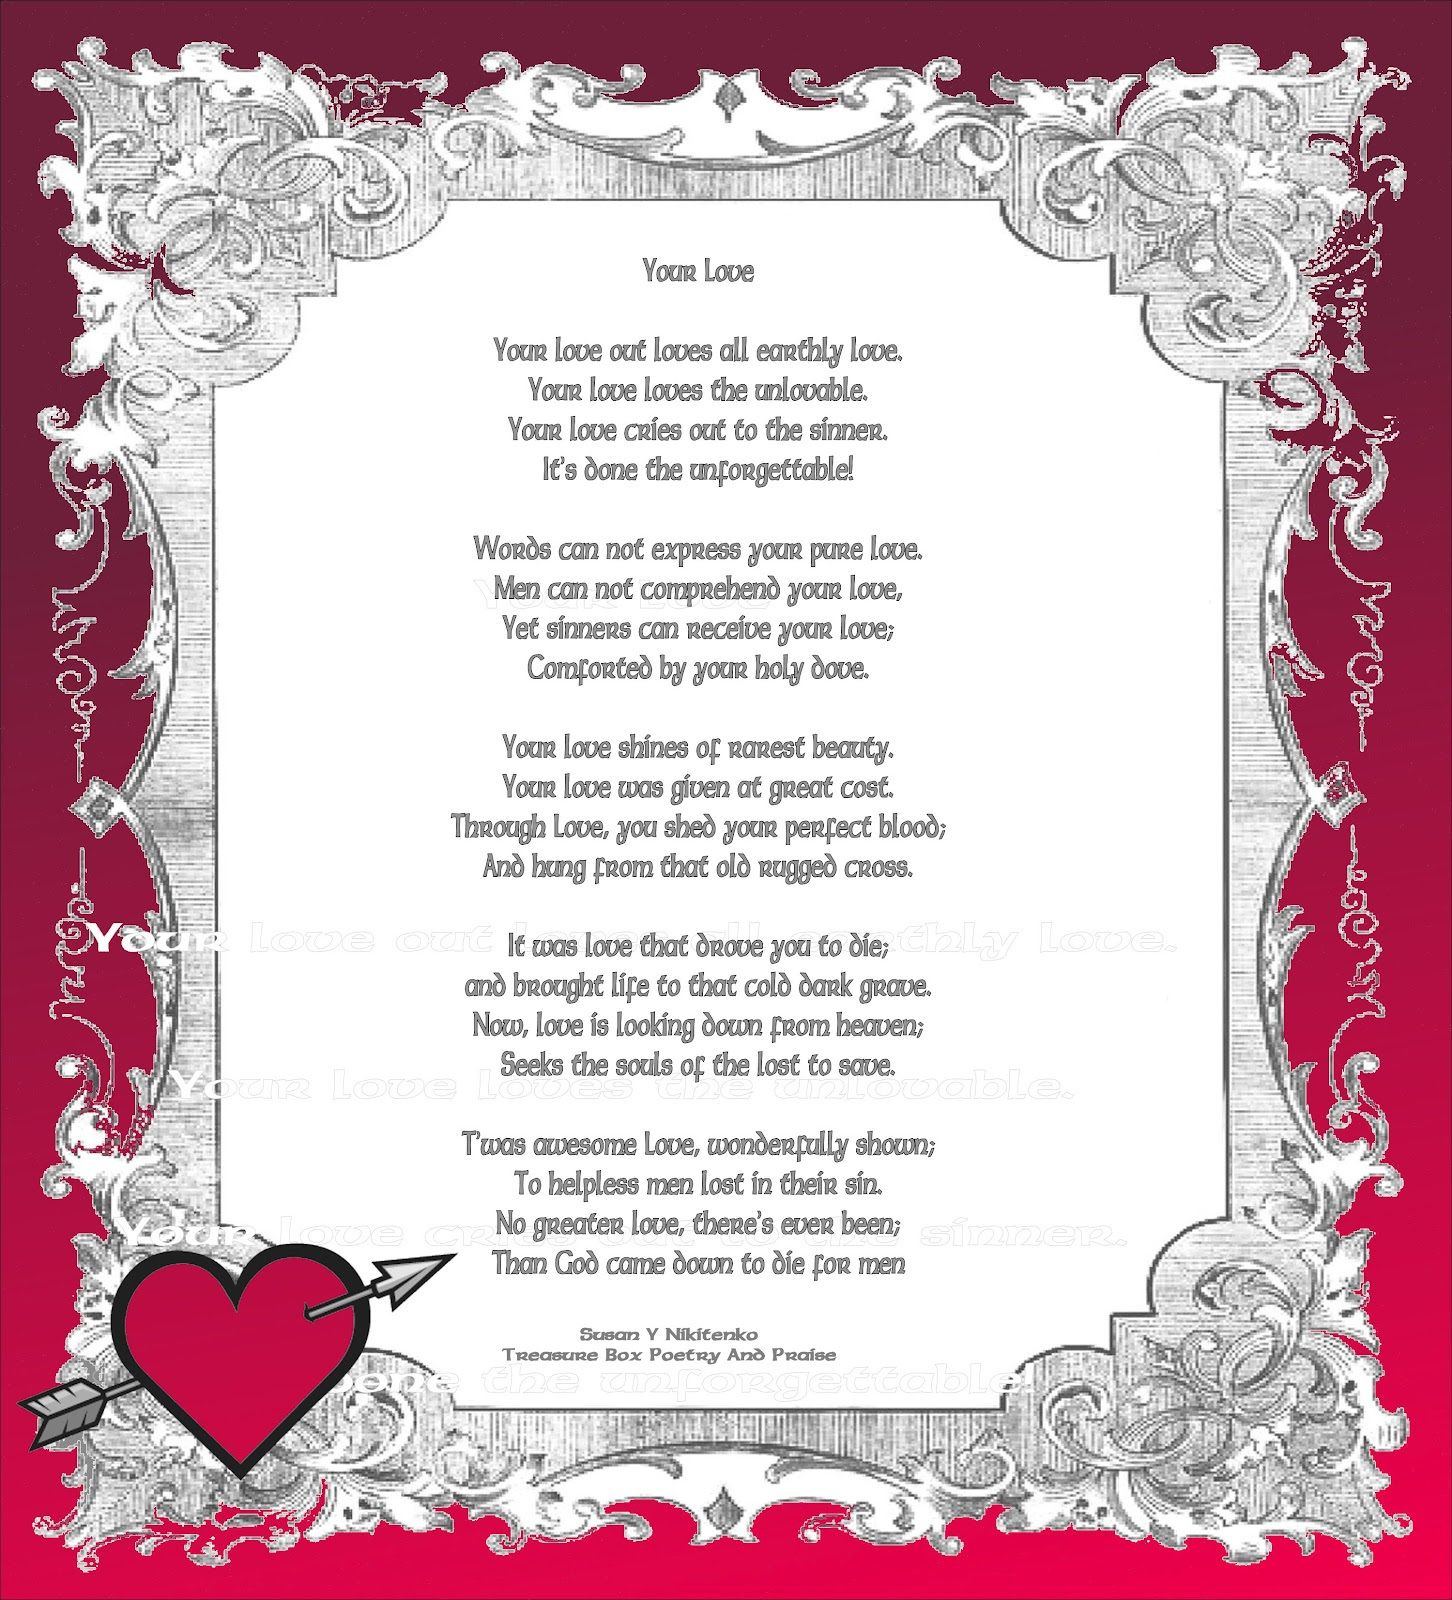 Christmas poems for church programs - Happy Valentines Day To My Husband And Wife Quotes Bible Christian Images In My Treasure Box Your Love Poem Poster